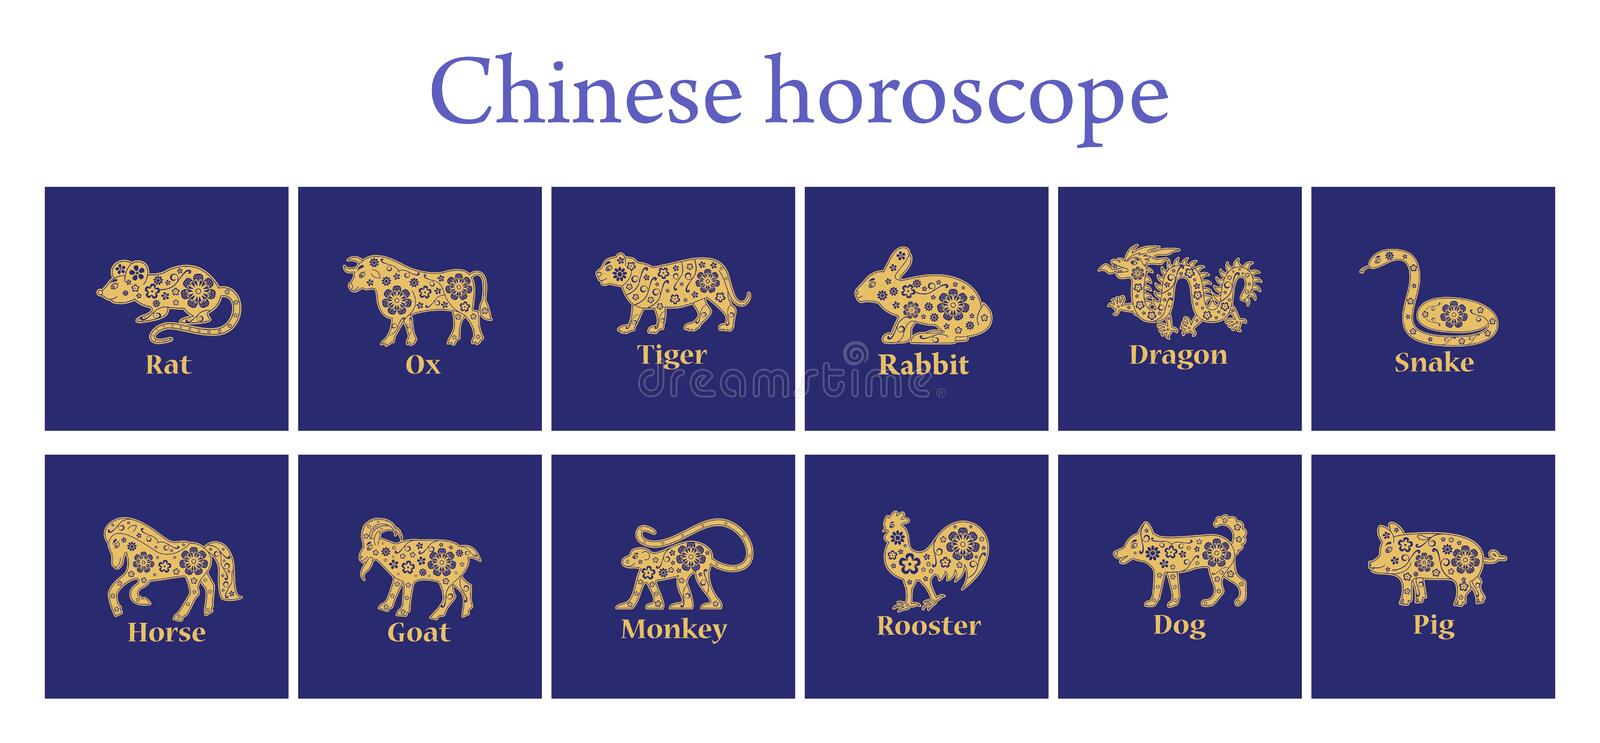 Chinese horoscope 2020, 2021, 2022, 2023, 2024, 2025, 2026 years. Floral golden ornament. Animal symbols. Chinese horoscope 2020, 2021 and 2022, 2023 and 2024 stock illustration